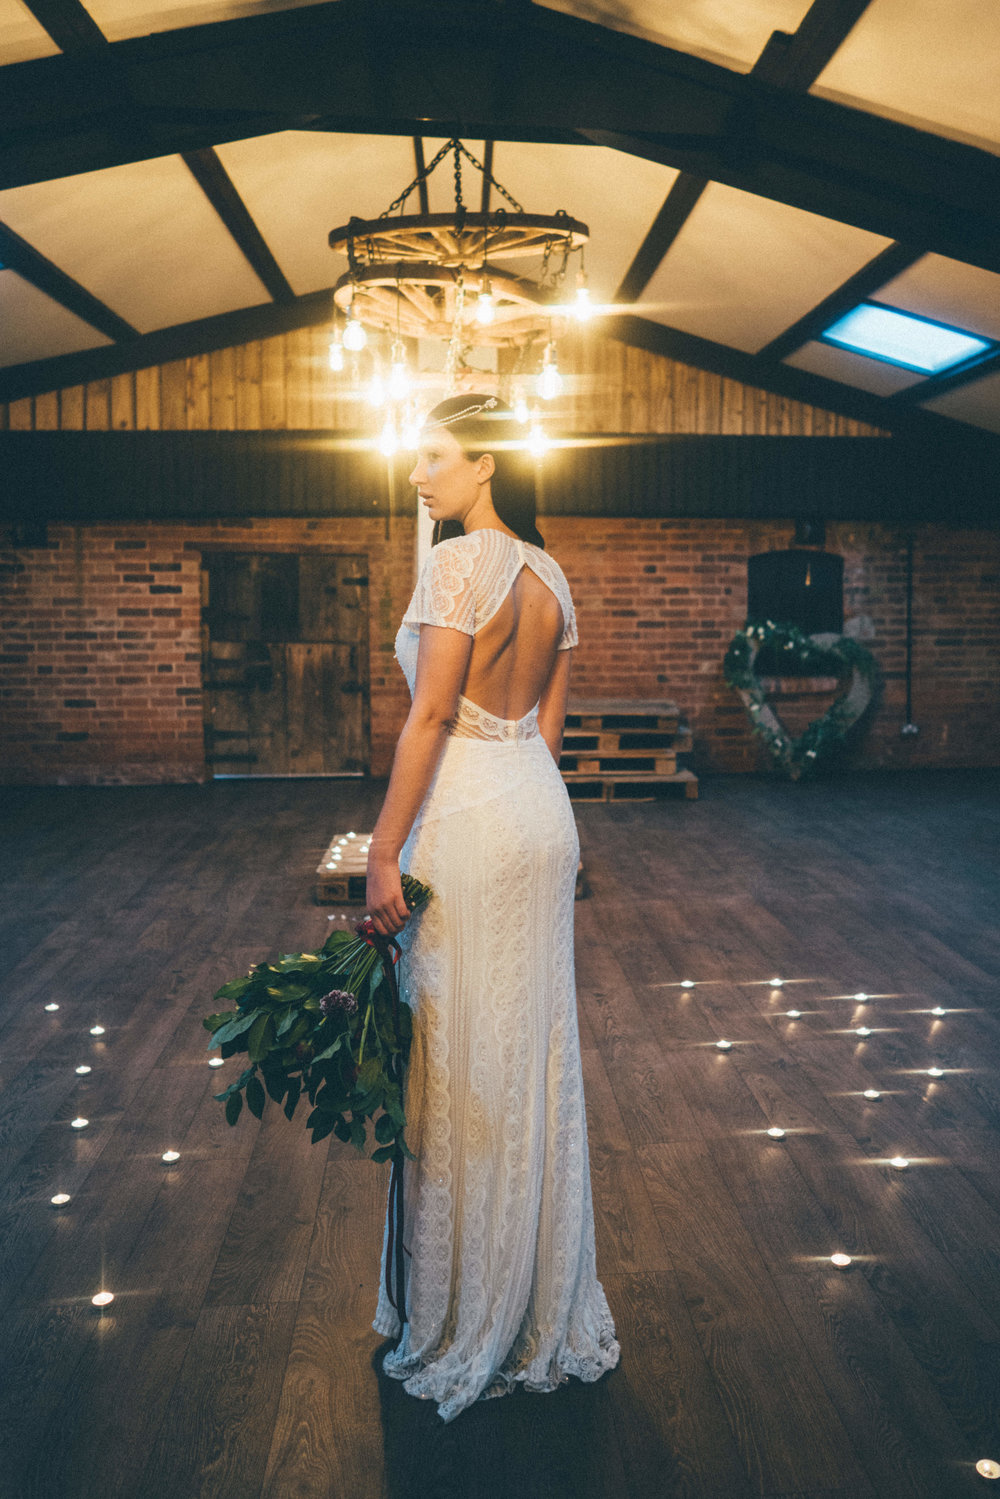 boho mystic glamour - I assisted in the coordination and execution of this stunning boho mystic glamour shot at Deighton Lodge, featured on Boho Weddings. Credit: Mr & Mrs Boutique Wedding Photography